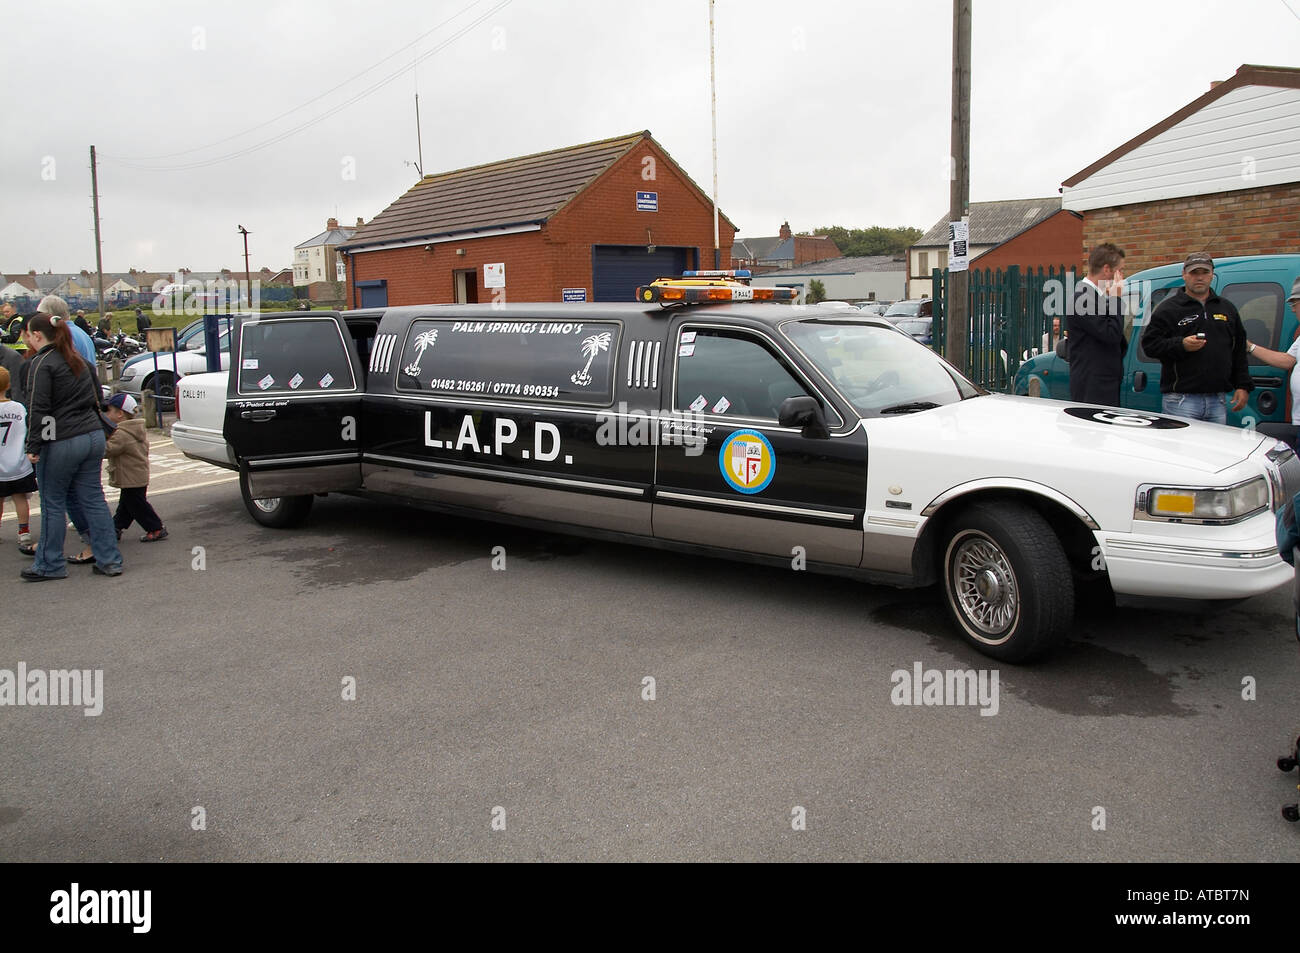 tacky stretched limo limoscene america car hen night done out as police car crass bad taste - Stock Image